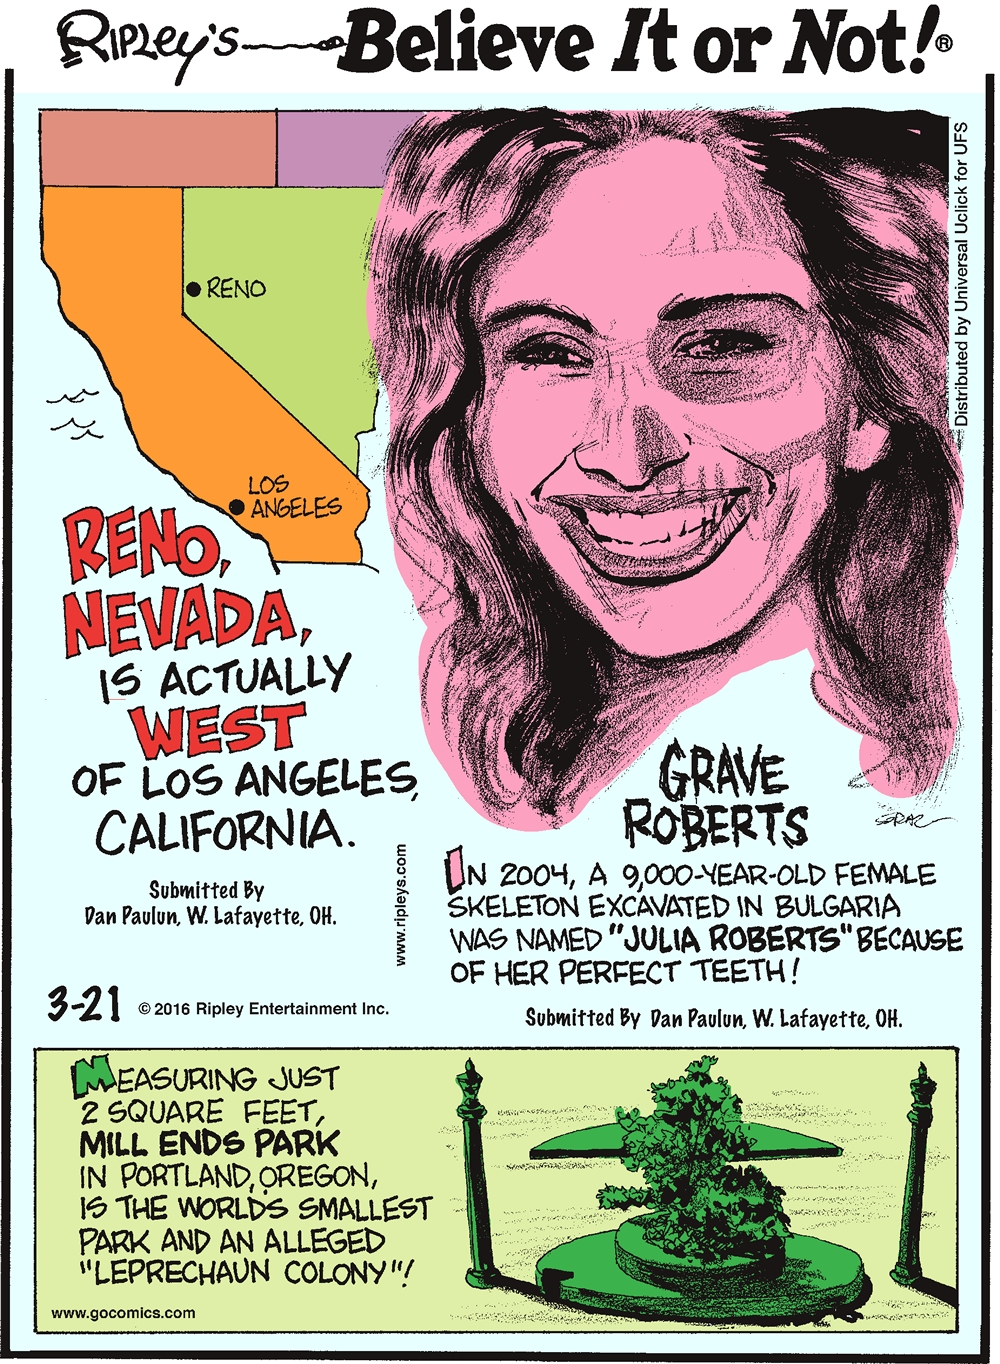 "Reno, Nevada, is actually West of Los Angeles, California. Submitted by Dan Paulun, W. Lafayette, OH. -------------------- Grave Roberts In 2004, a 9,000-year-old female skeleton excavated in Bulgaria was named ""Julia Roberts"" because of her perfect teeth! Submitted by Dan Paulun, W. Lafayette, OH. -------------------- Measuring just 2 square feet, Mill Ends Park in Portland Oregon, is the world's smallest park and an alleged ""Leprechaun Colony""!"